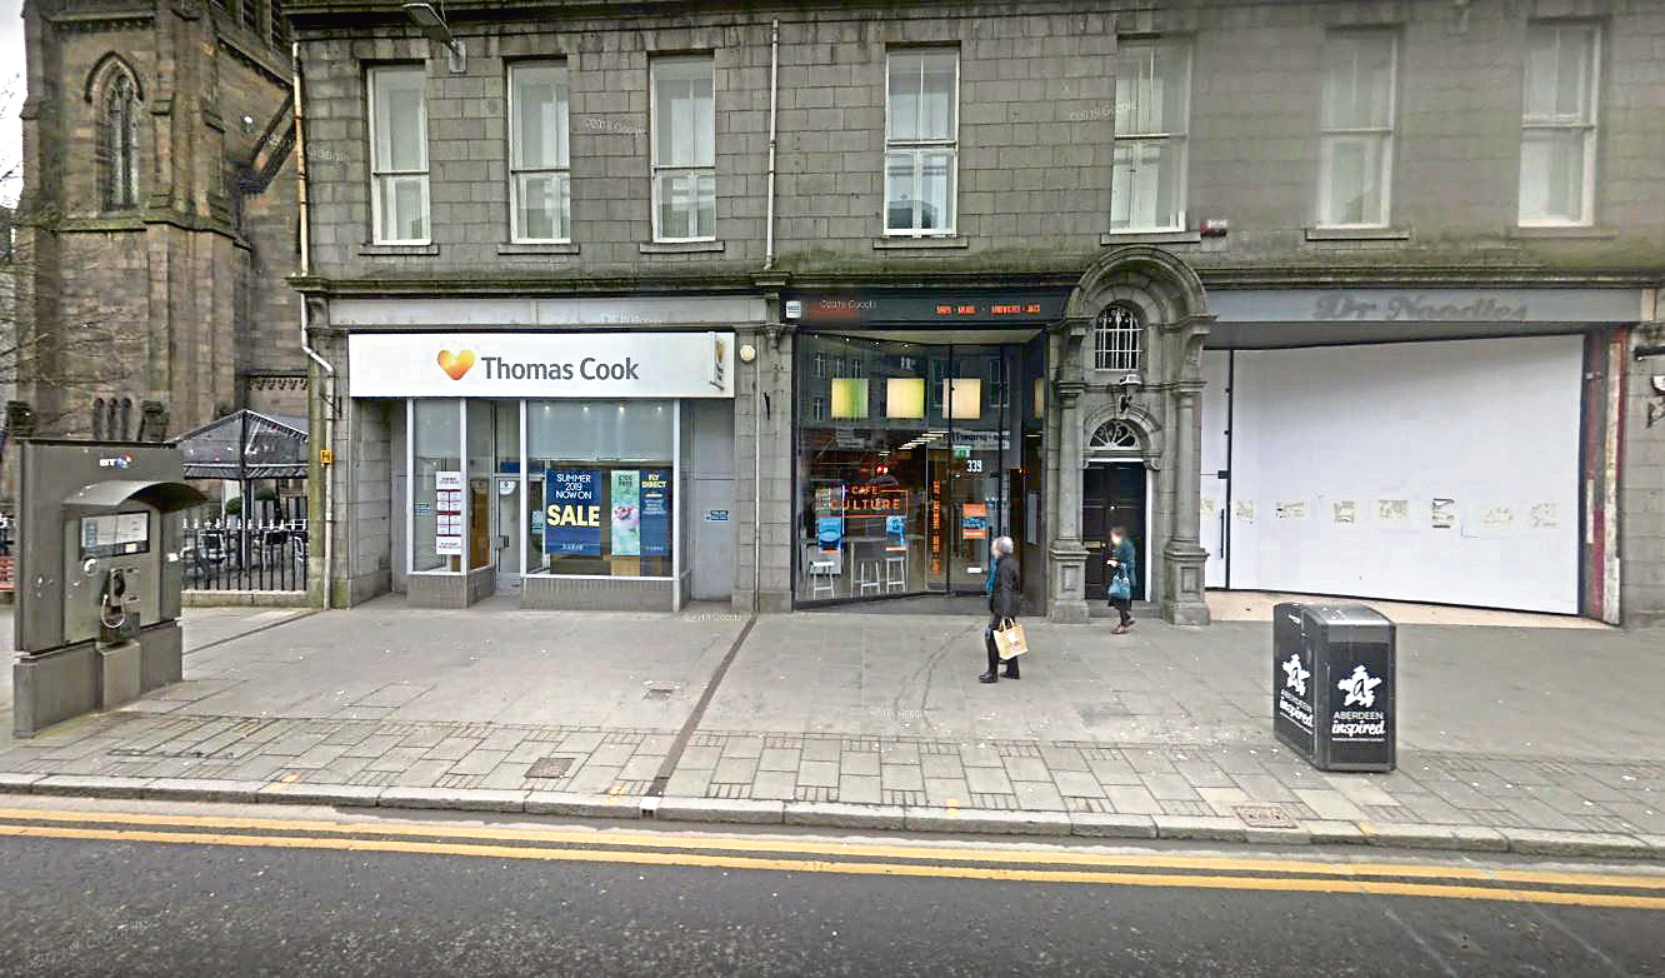 The plans would see the former Thomas Cook on Union Street transformed into a gastro-pub